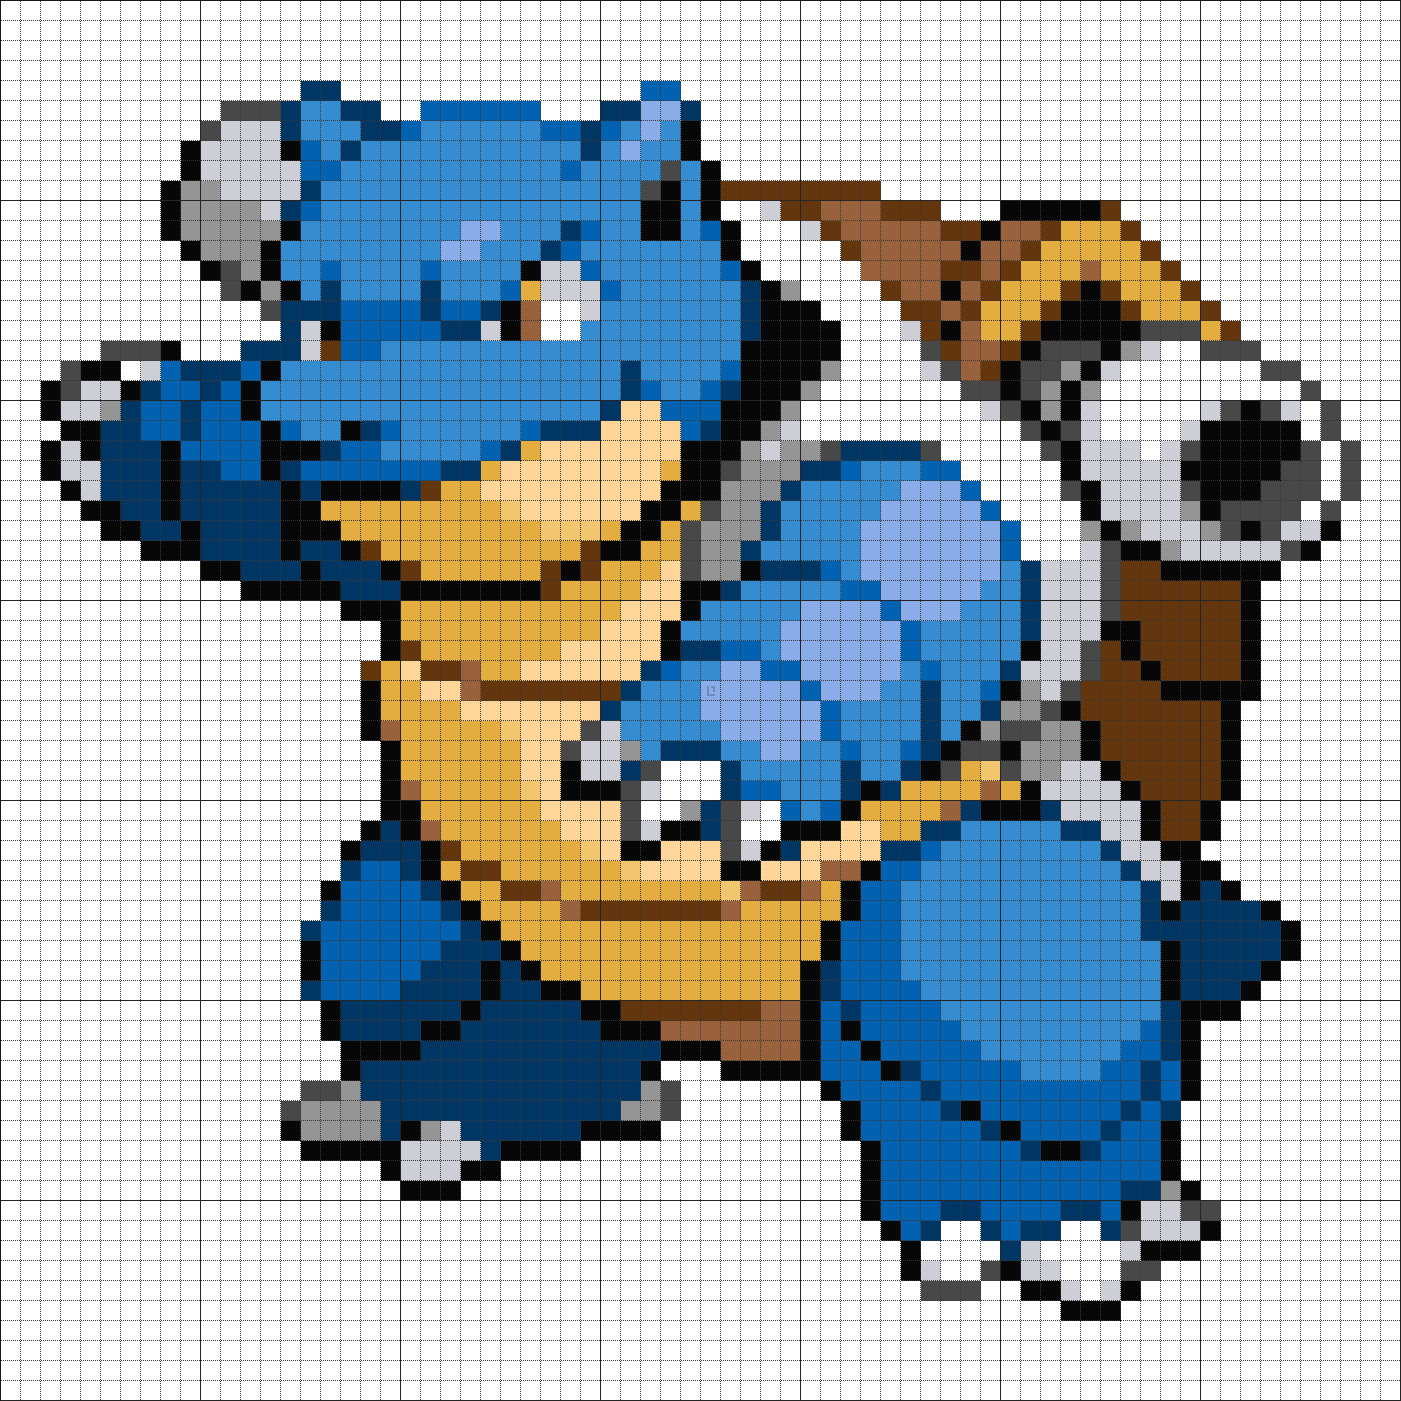 9 Blastoise | Pokemon Pixel Art | Pinterest | Pokémon, Hama beads ...